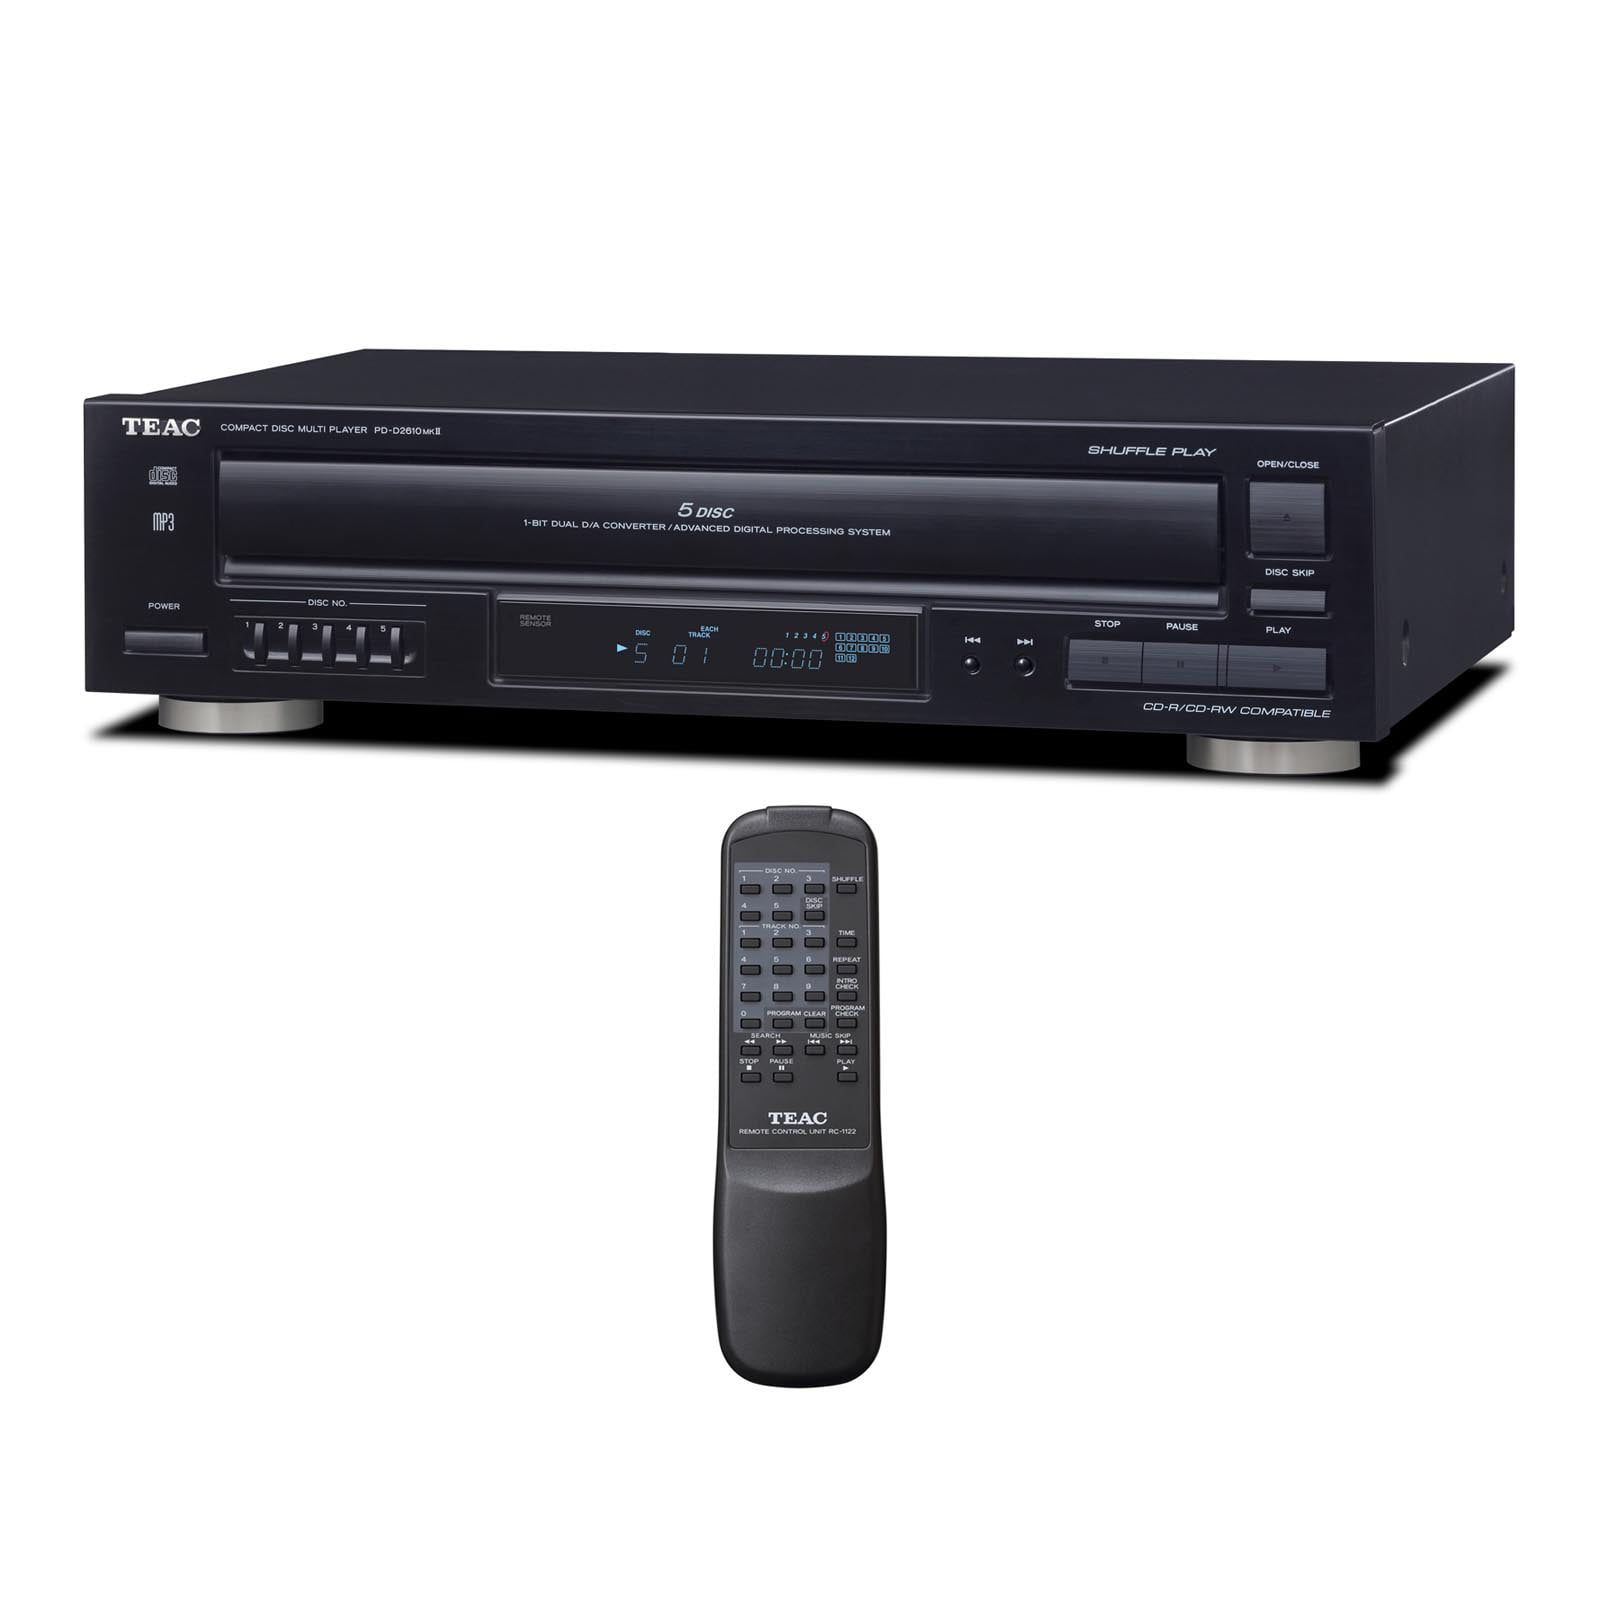 TEAC PD-D2610MK2 5-Disc CD Player with Remote by TEAC